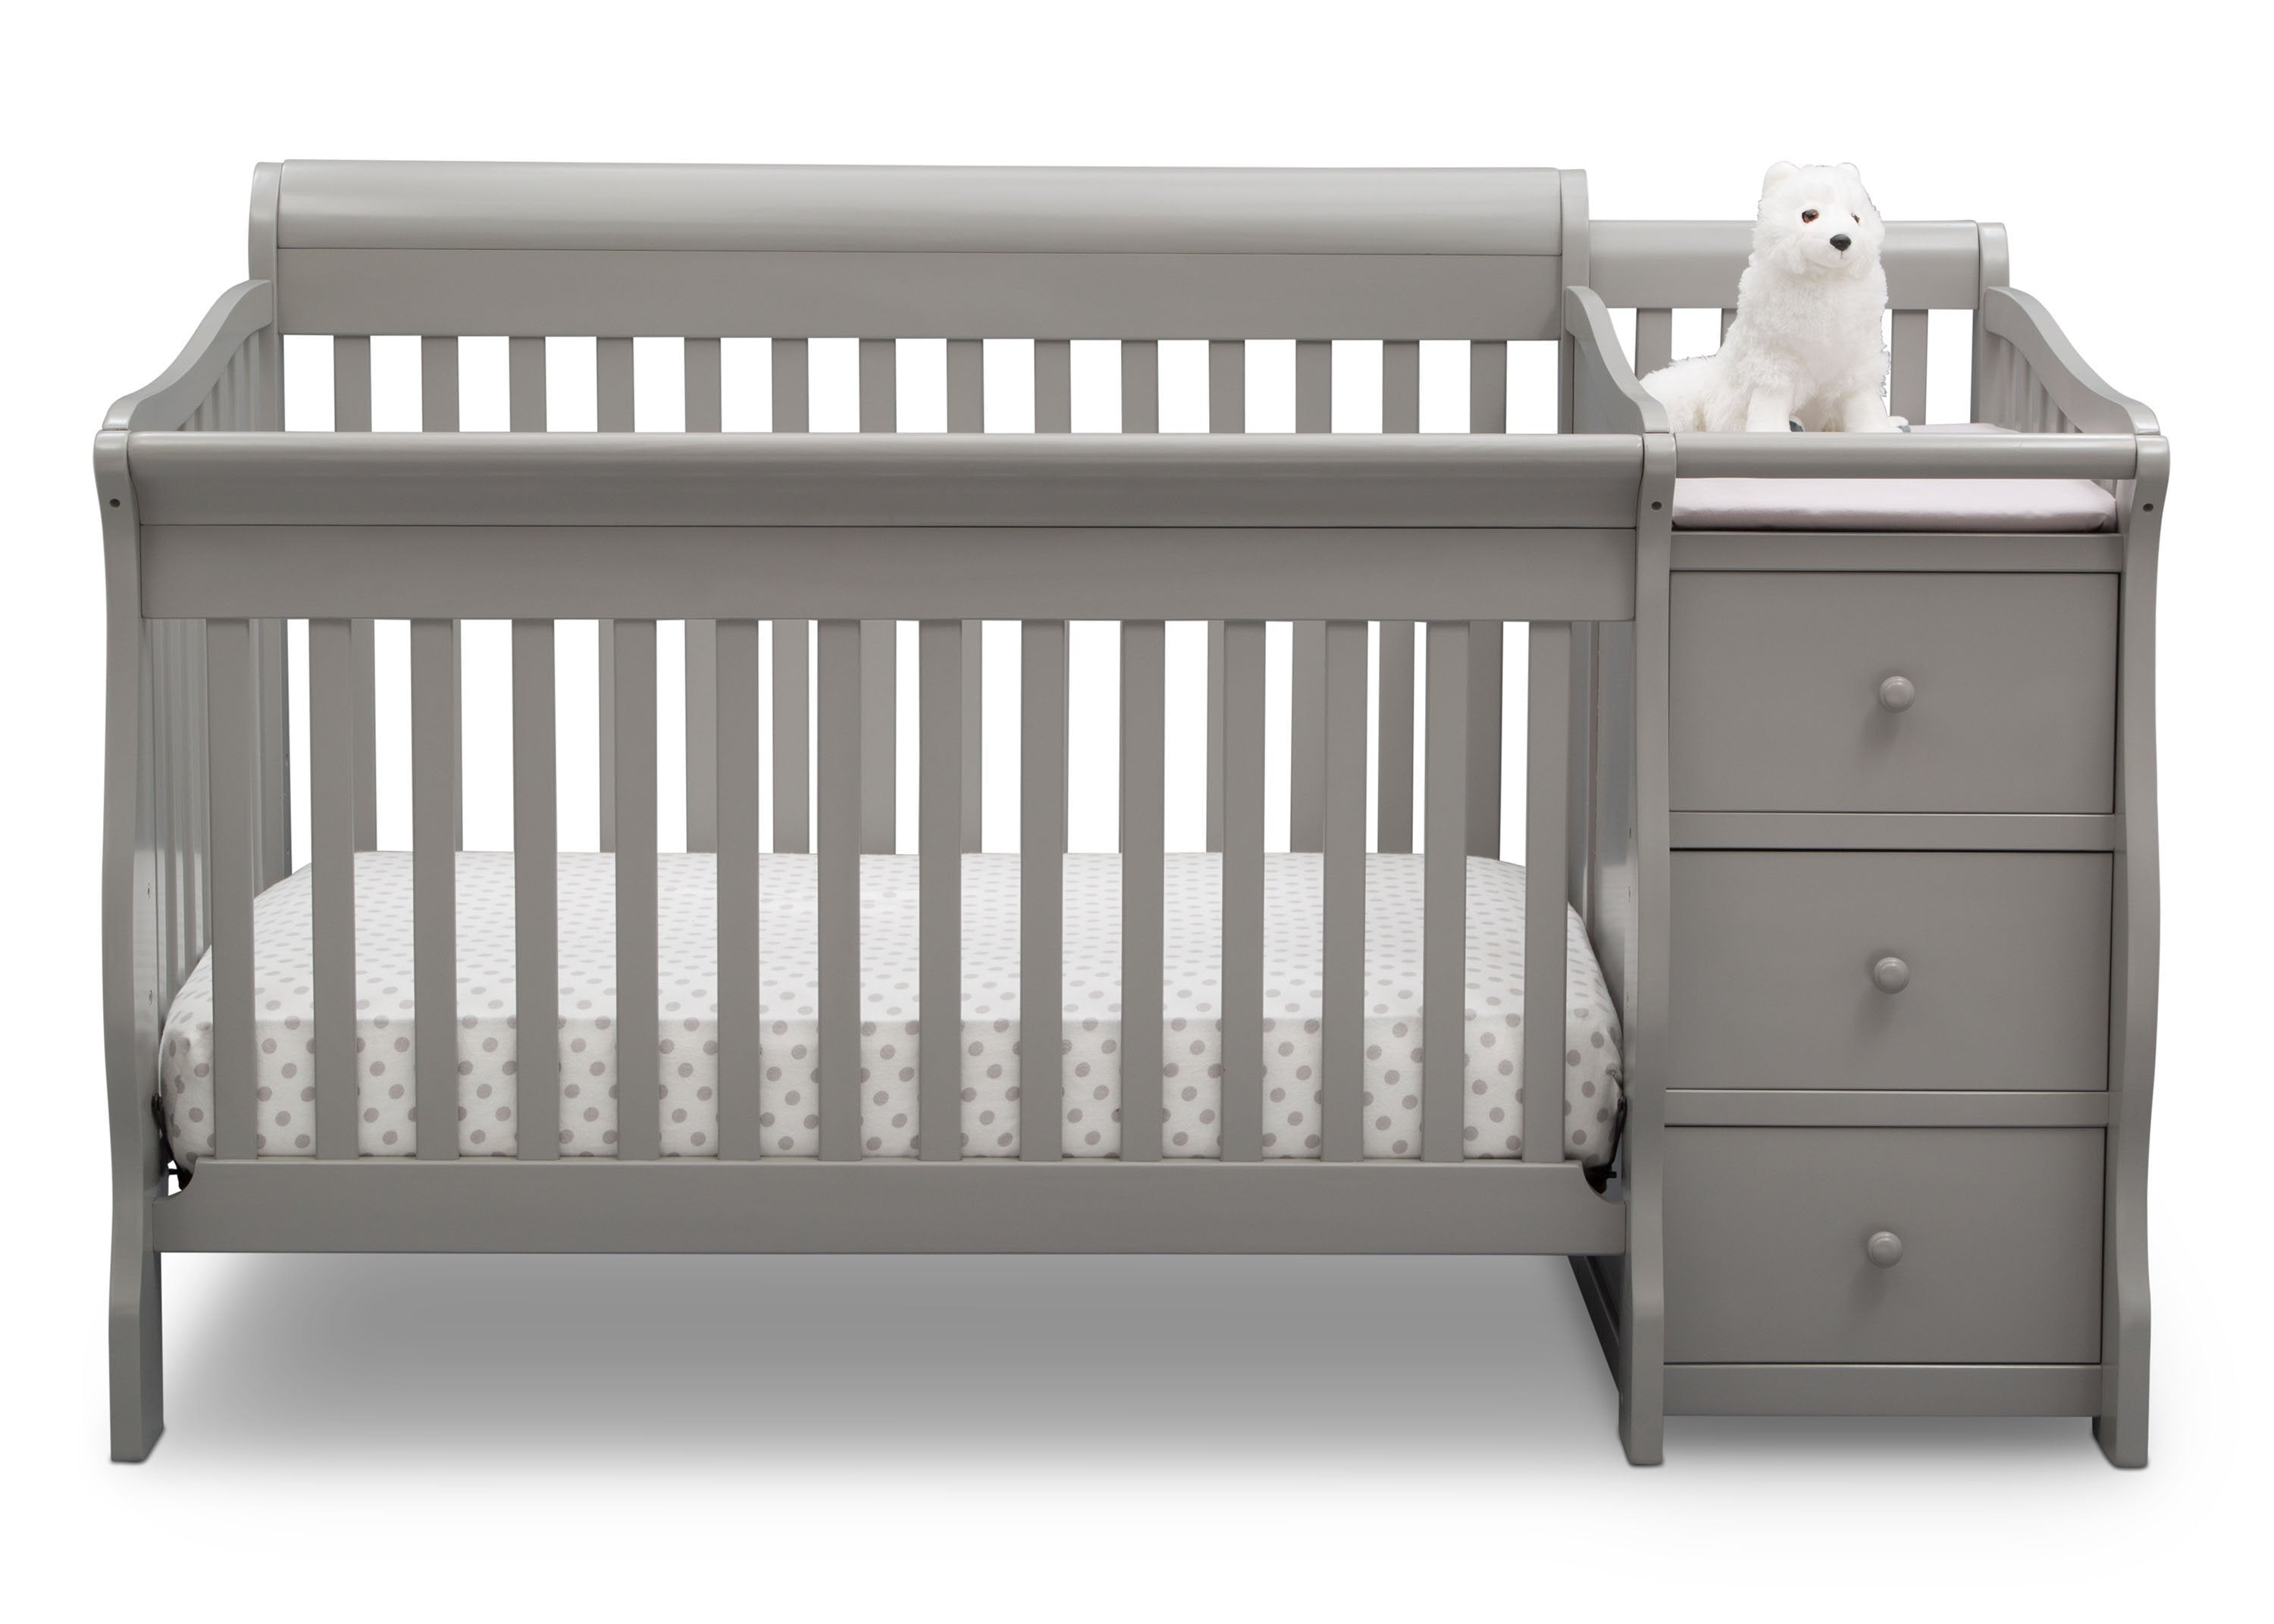 home child convertible babydresser fabulous nursery kalani and babies r crib changing best dressers table combo us baby dresser da of cribs v trendy target davinci buy espresso